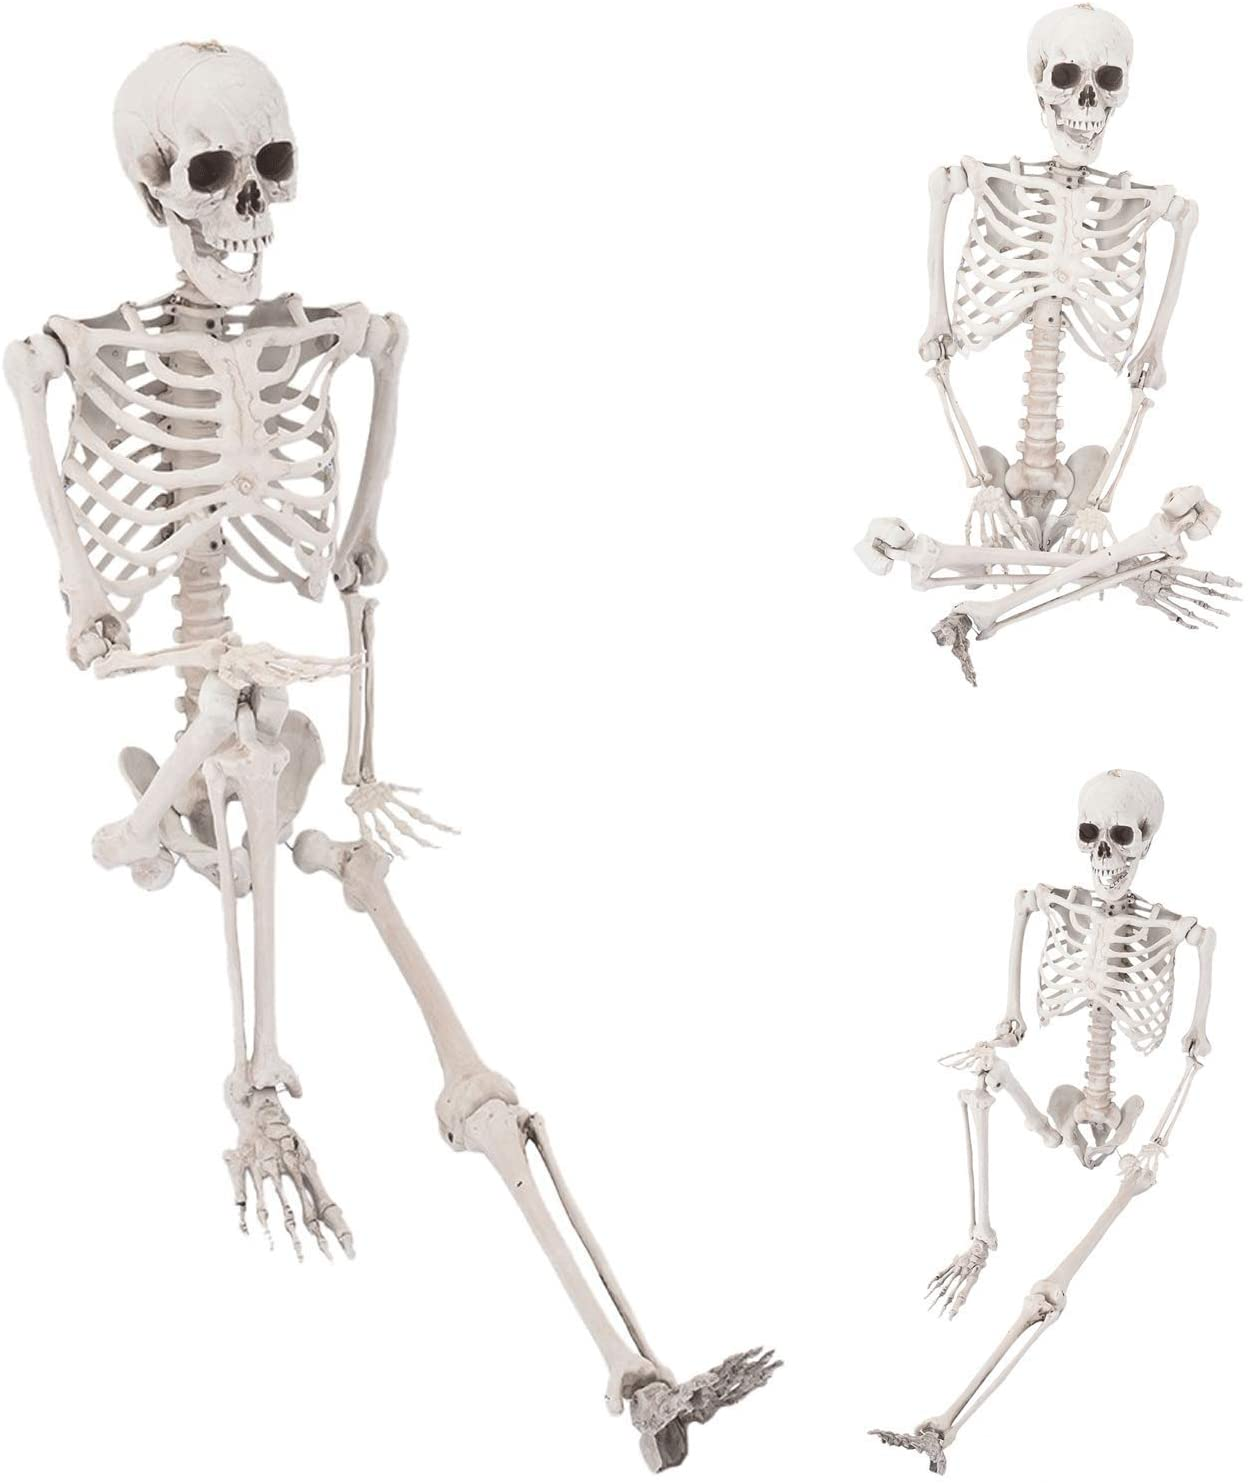 Shipment from USA 65 Inches Halloween Posable Skeleton, Full Body Skeleton Movable Joints, Bones for Halloween Decorations Great for Haunted Houses, Graveyard Scenes, Halloween Parties